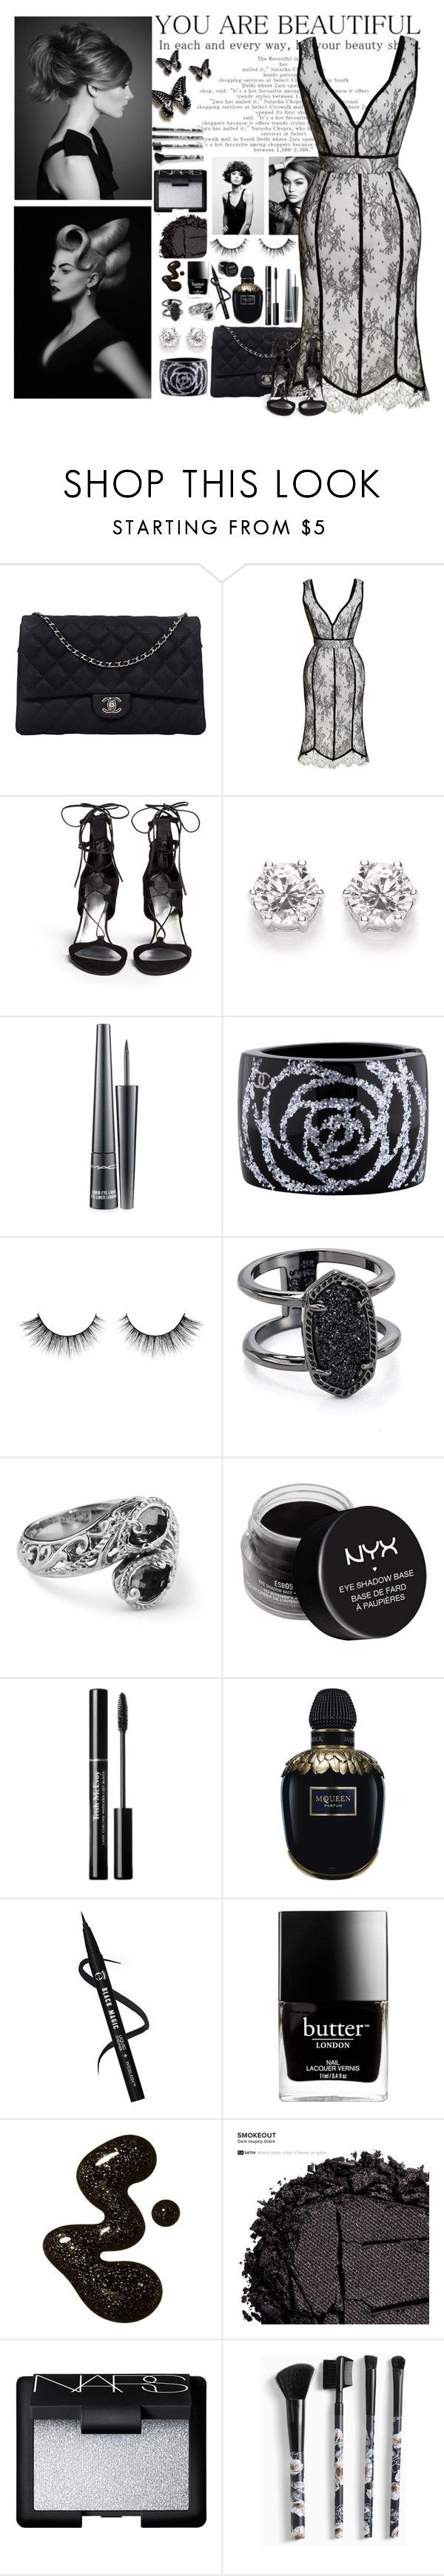 """""""Engagement 💍"""" by yuliabaylor ❤ liked on Polyvore featuring Angelo, Chanel, Natasha Zinko, Stuart Weitzman, MAC Cosmetics, Kendra Scott, NYX, Alexander McQueen, Butter London and Urban Decay"""